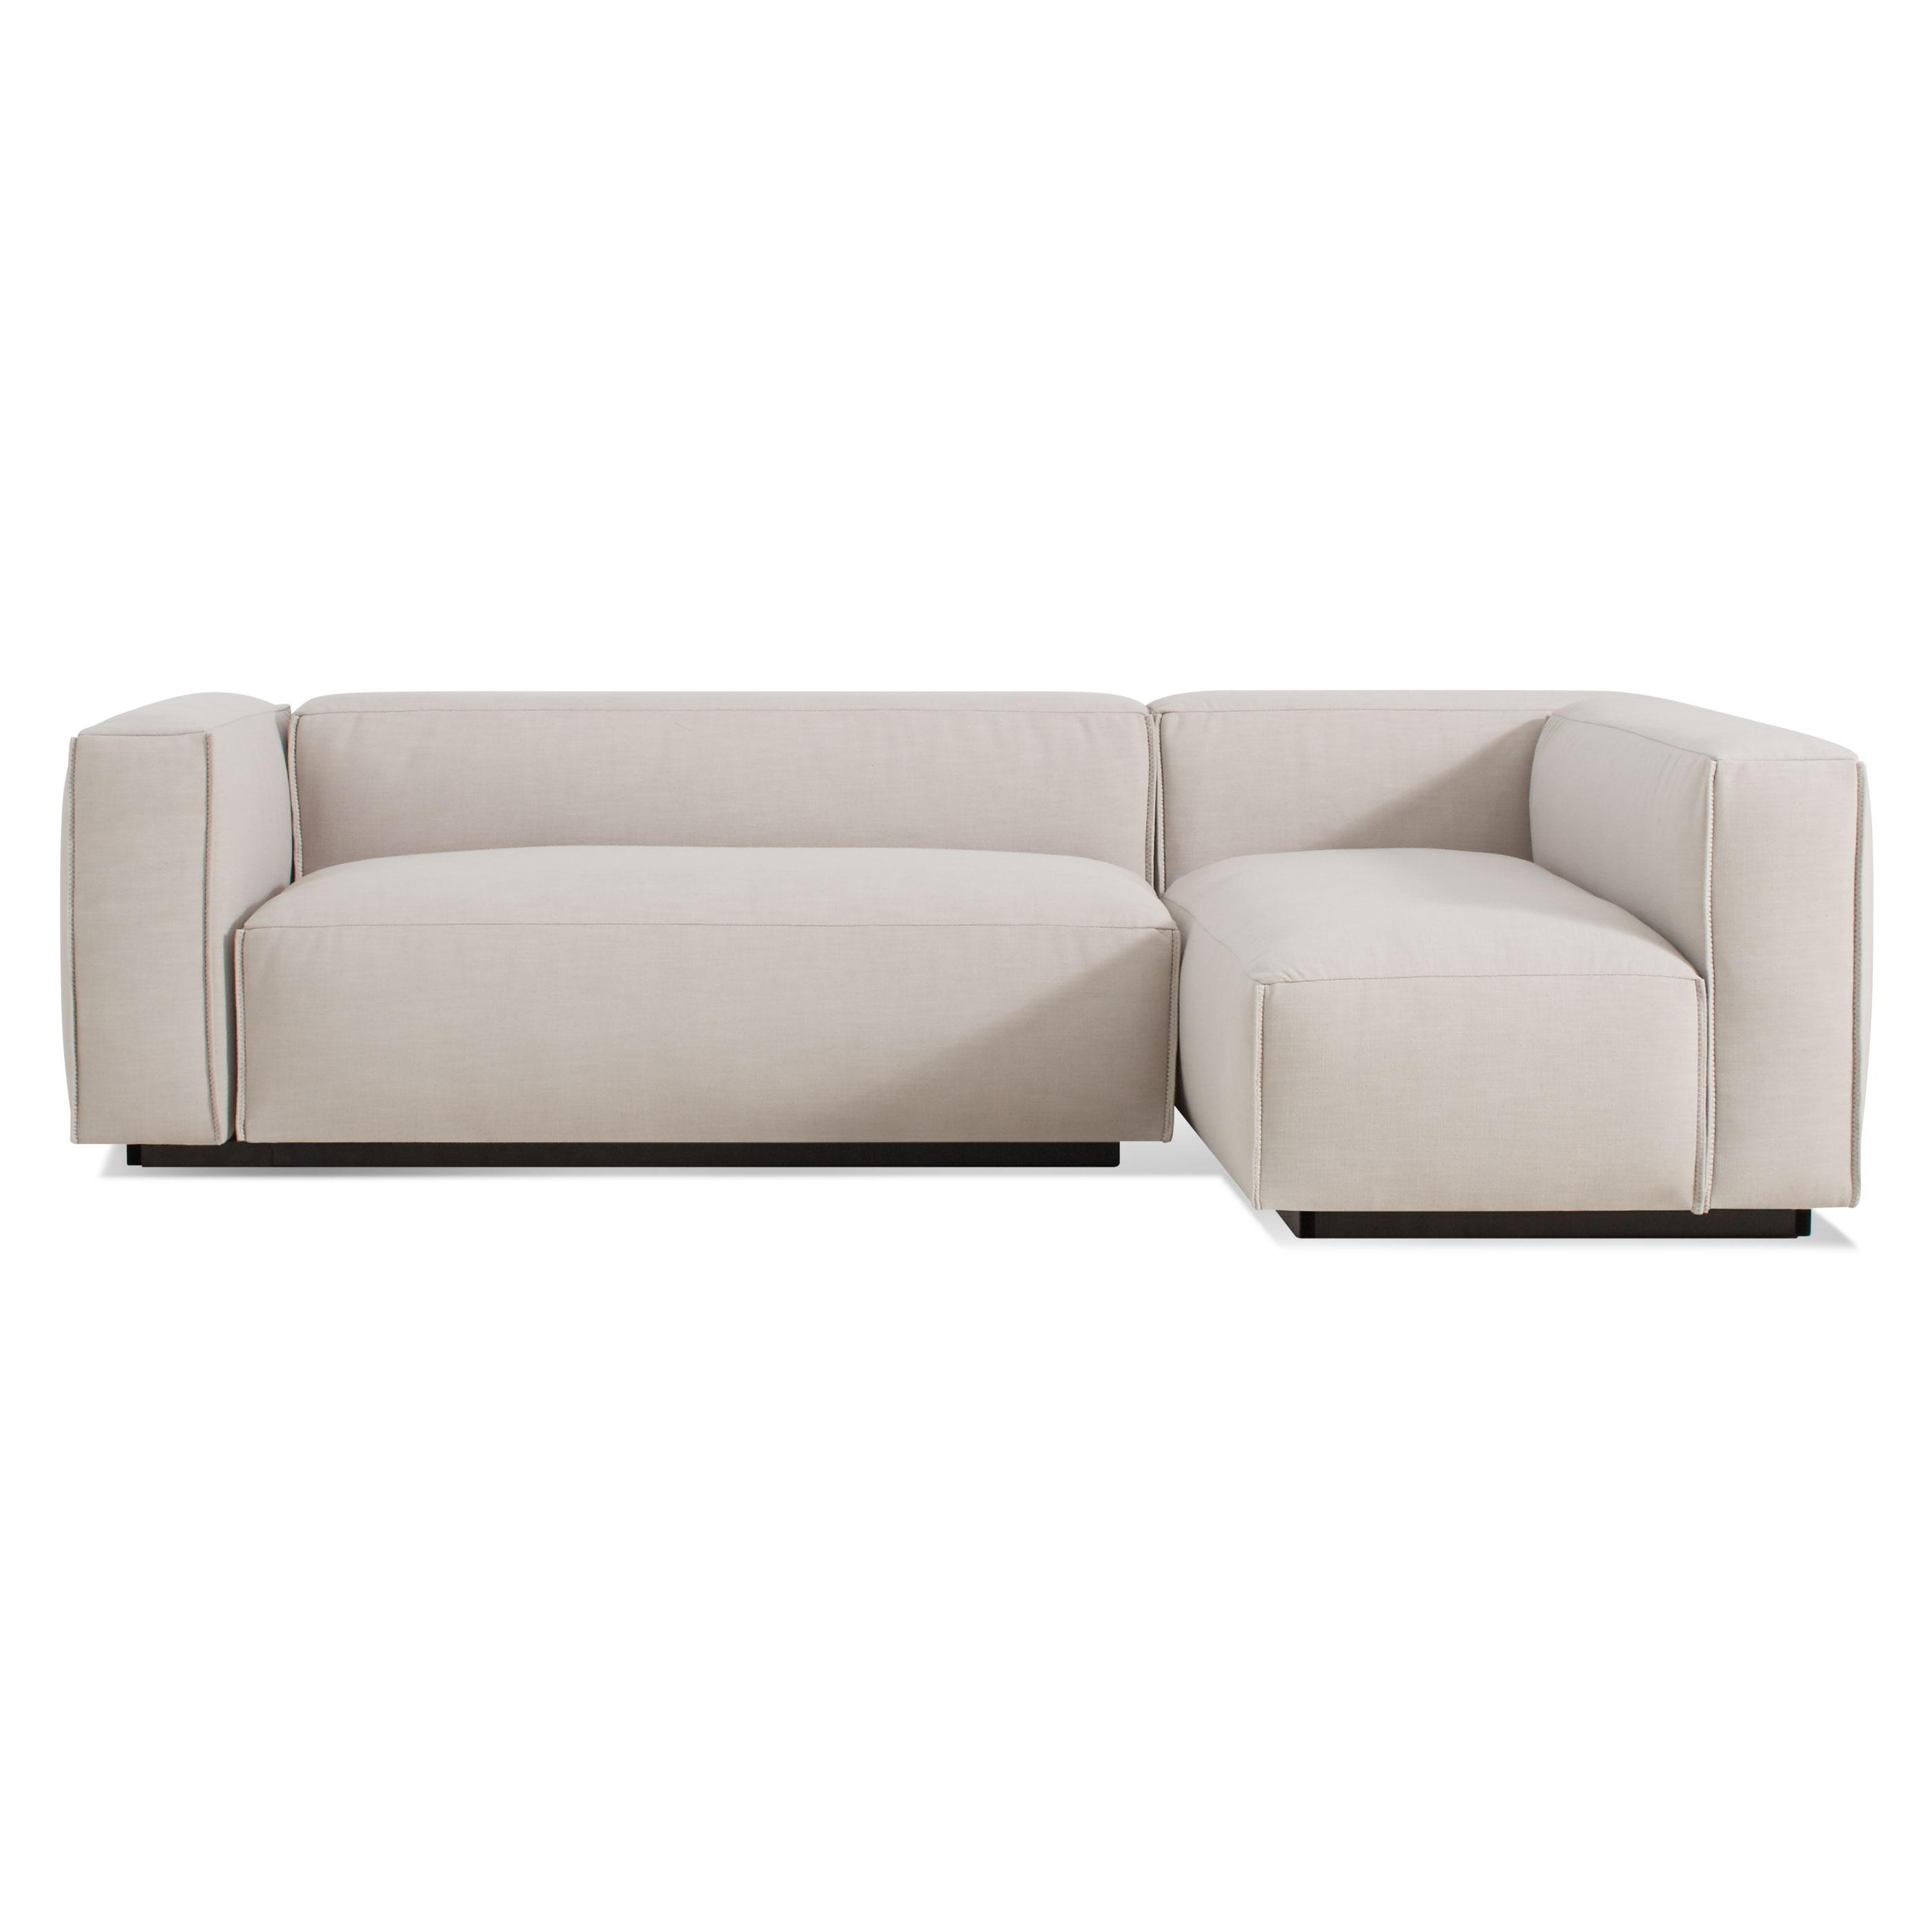 Cleon Small Modern Sectional Sofa | Blu Dot Regarding Small Modern Sofas (View 17 of 20)